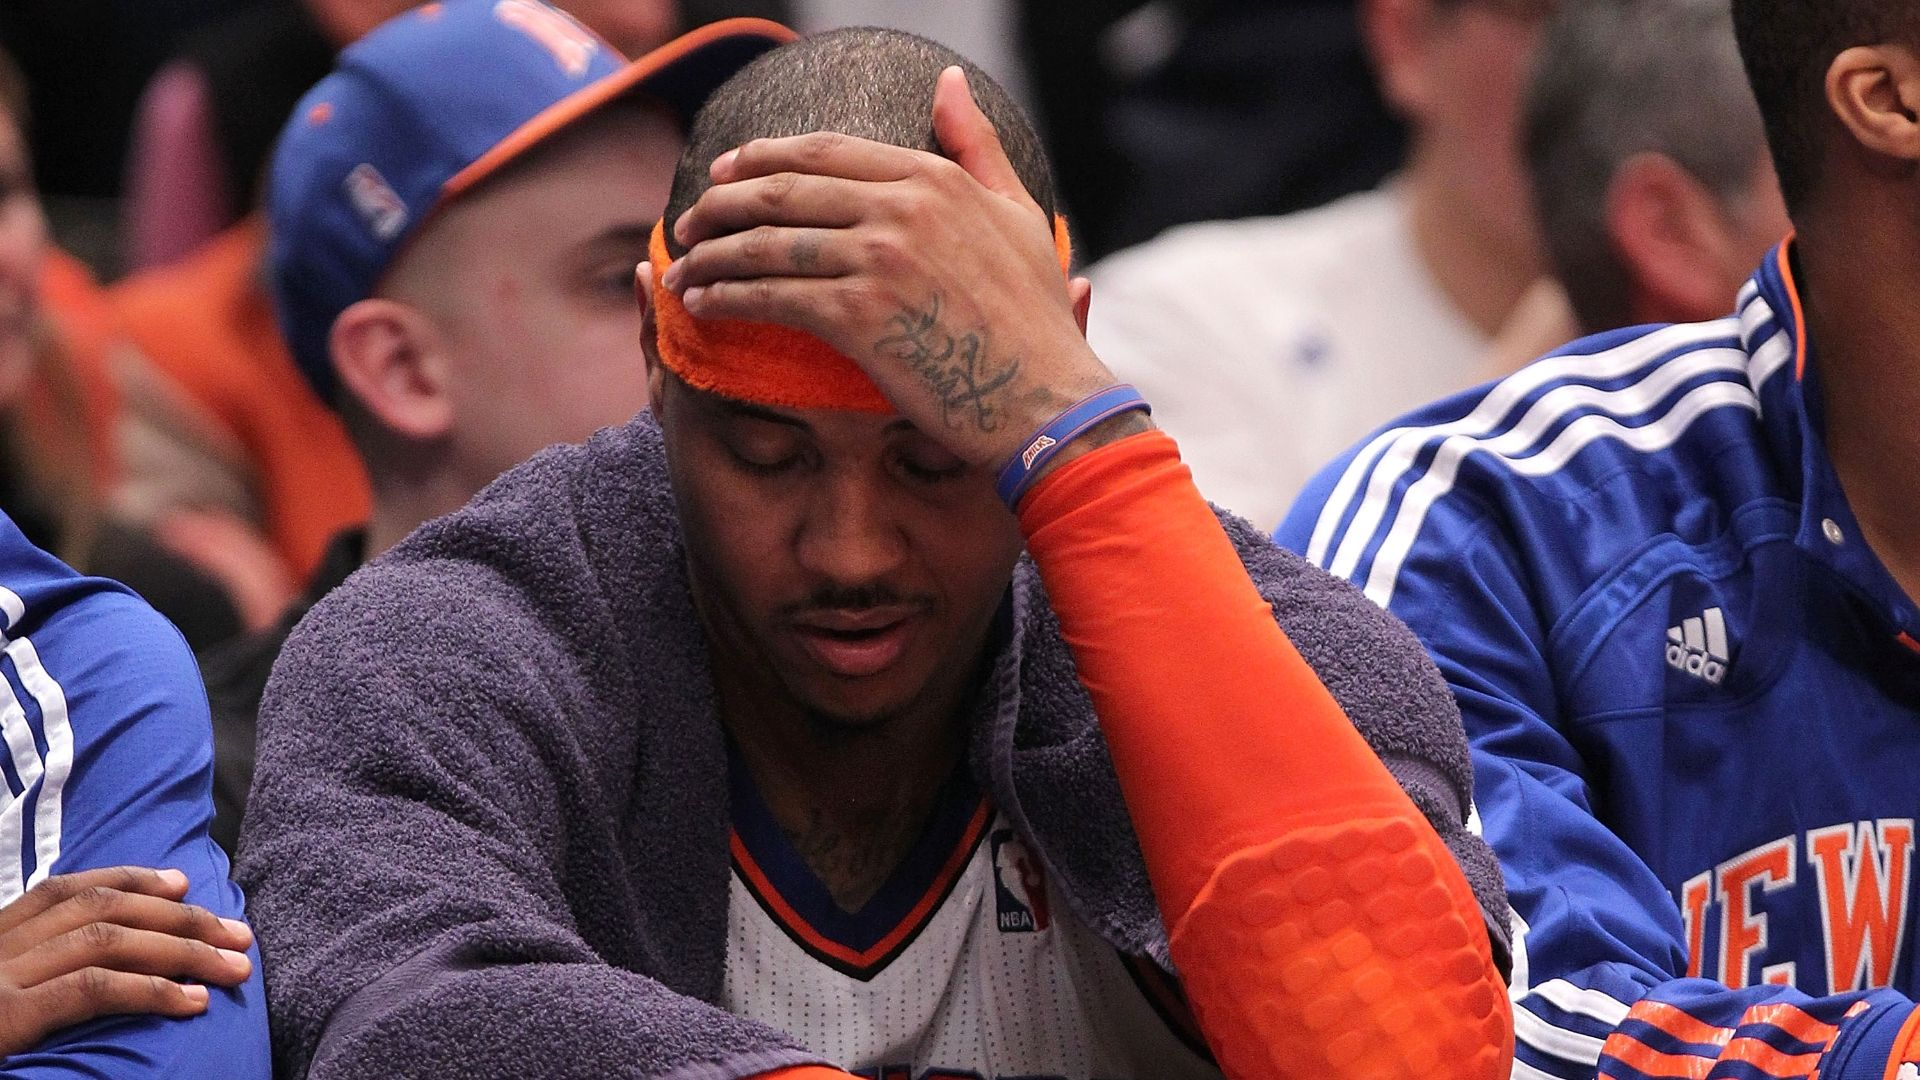 Melo's drama in New York